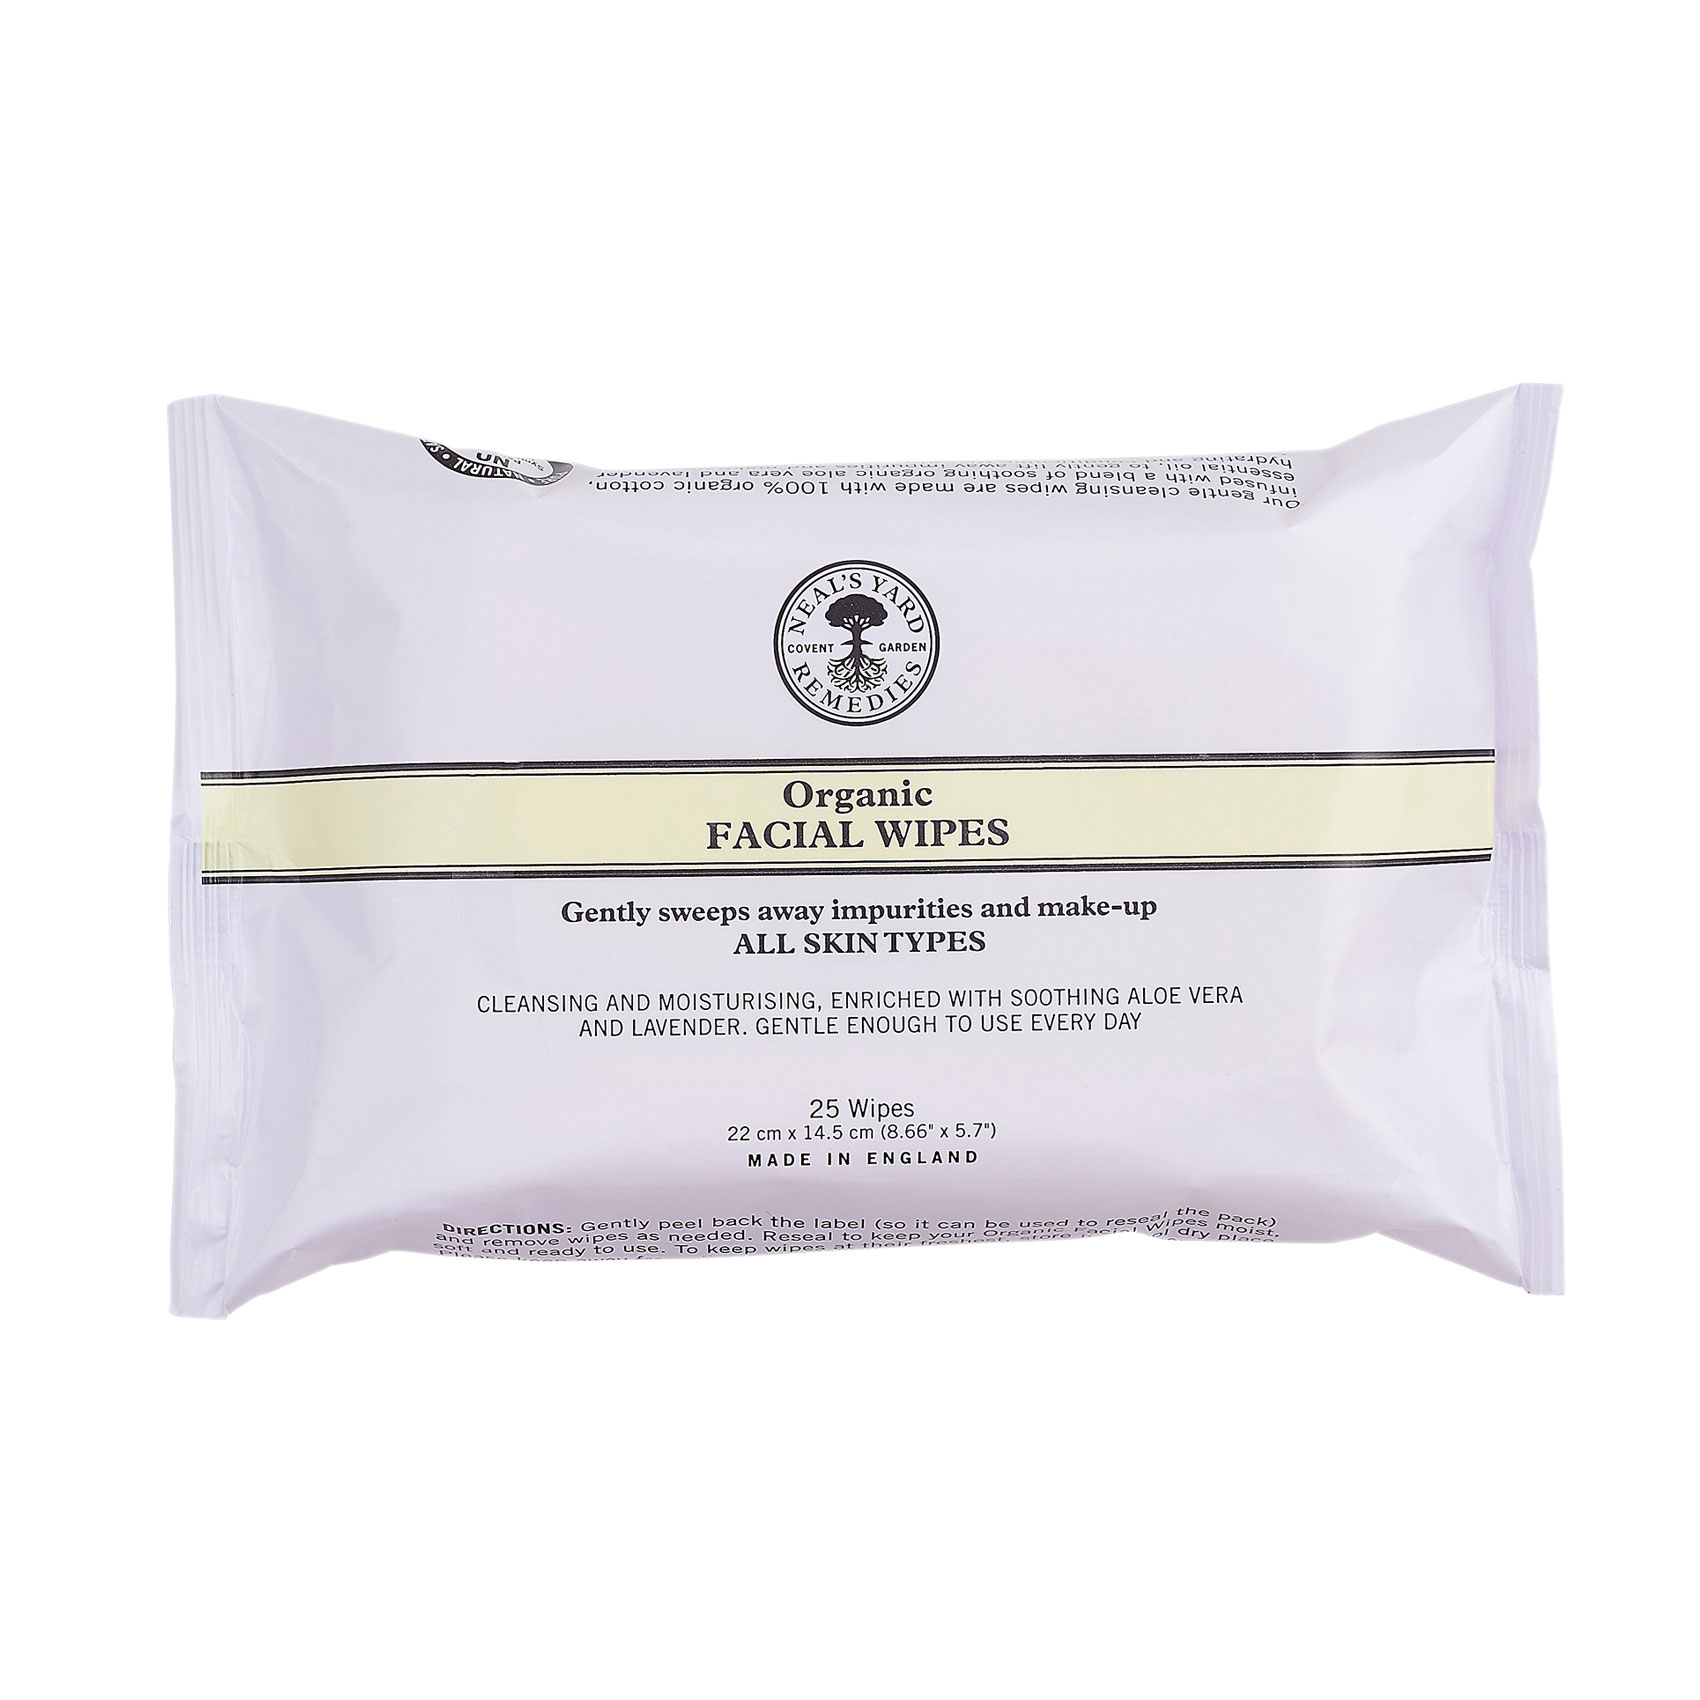 An image of Neal's Yard Remedies Organic Facial Wipes